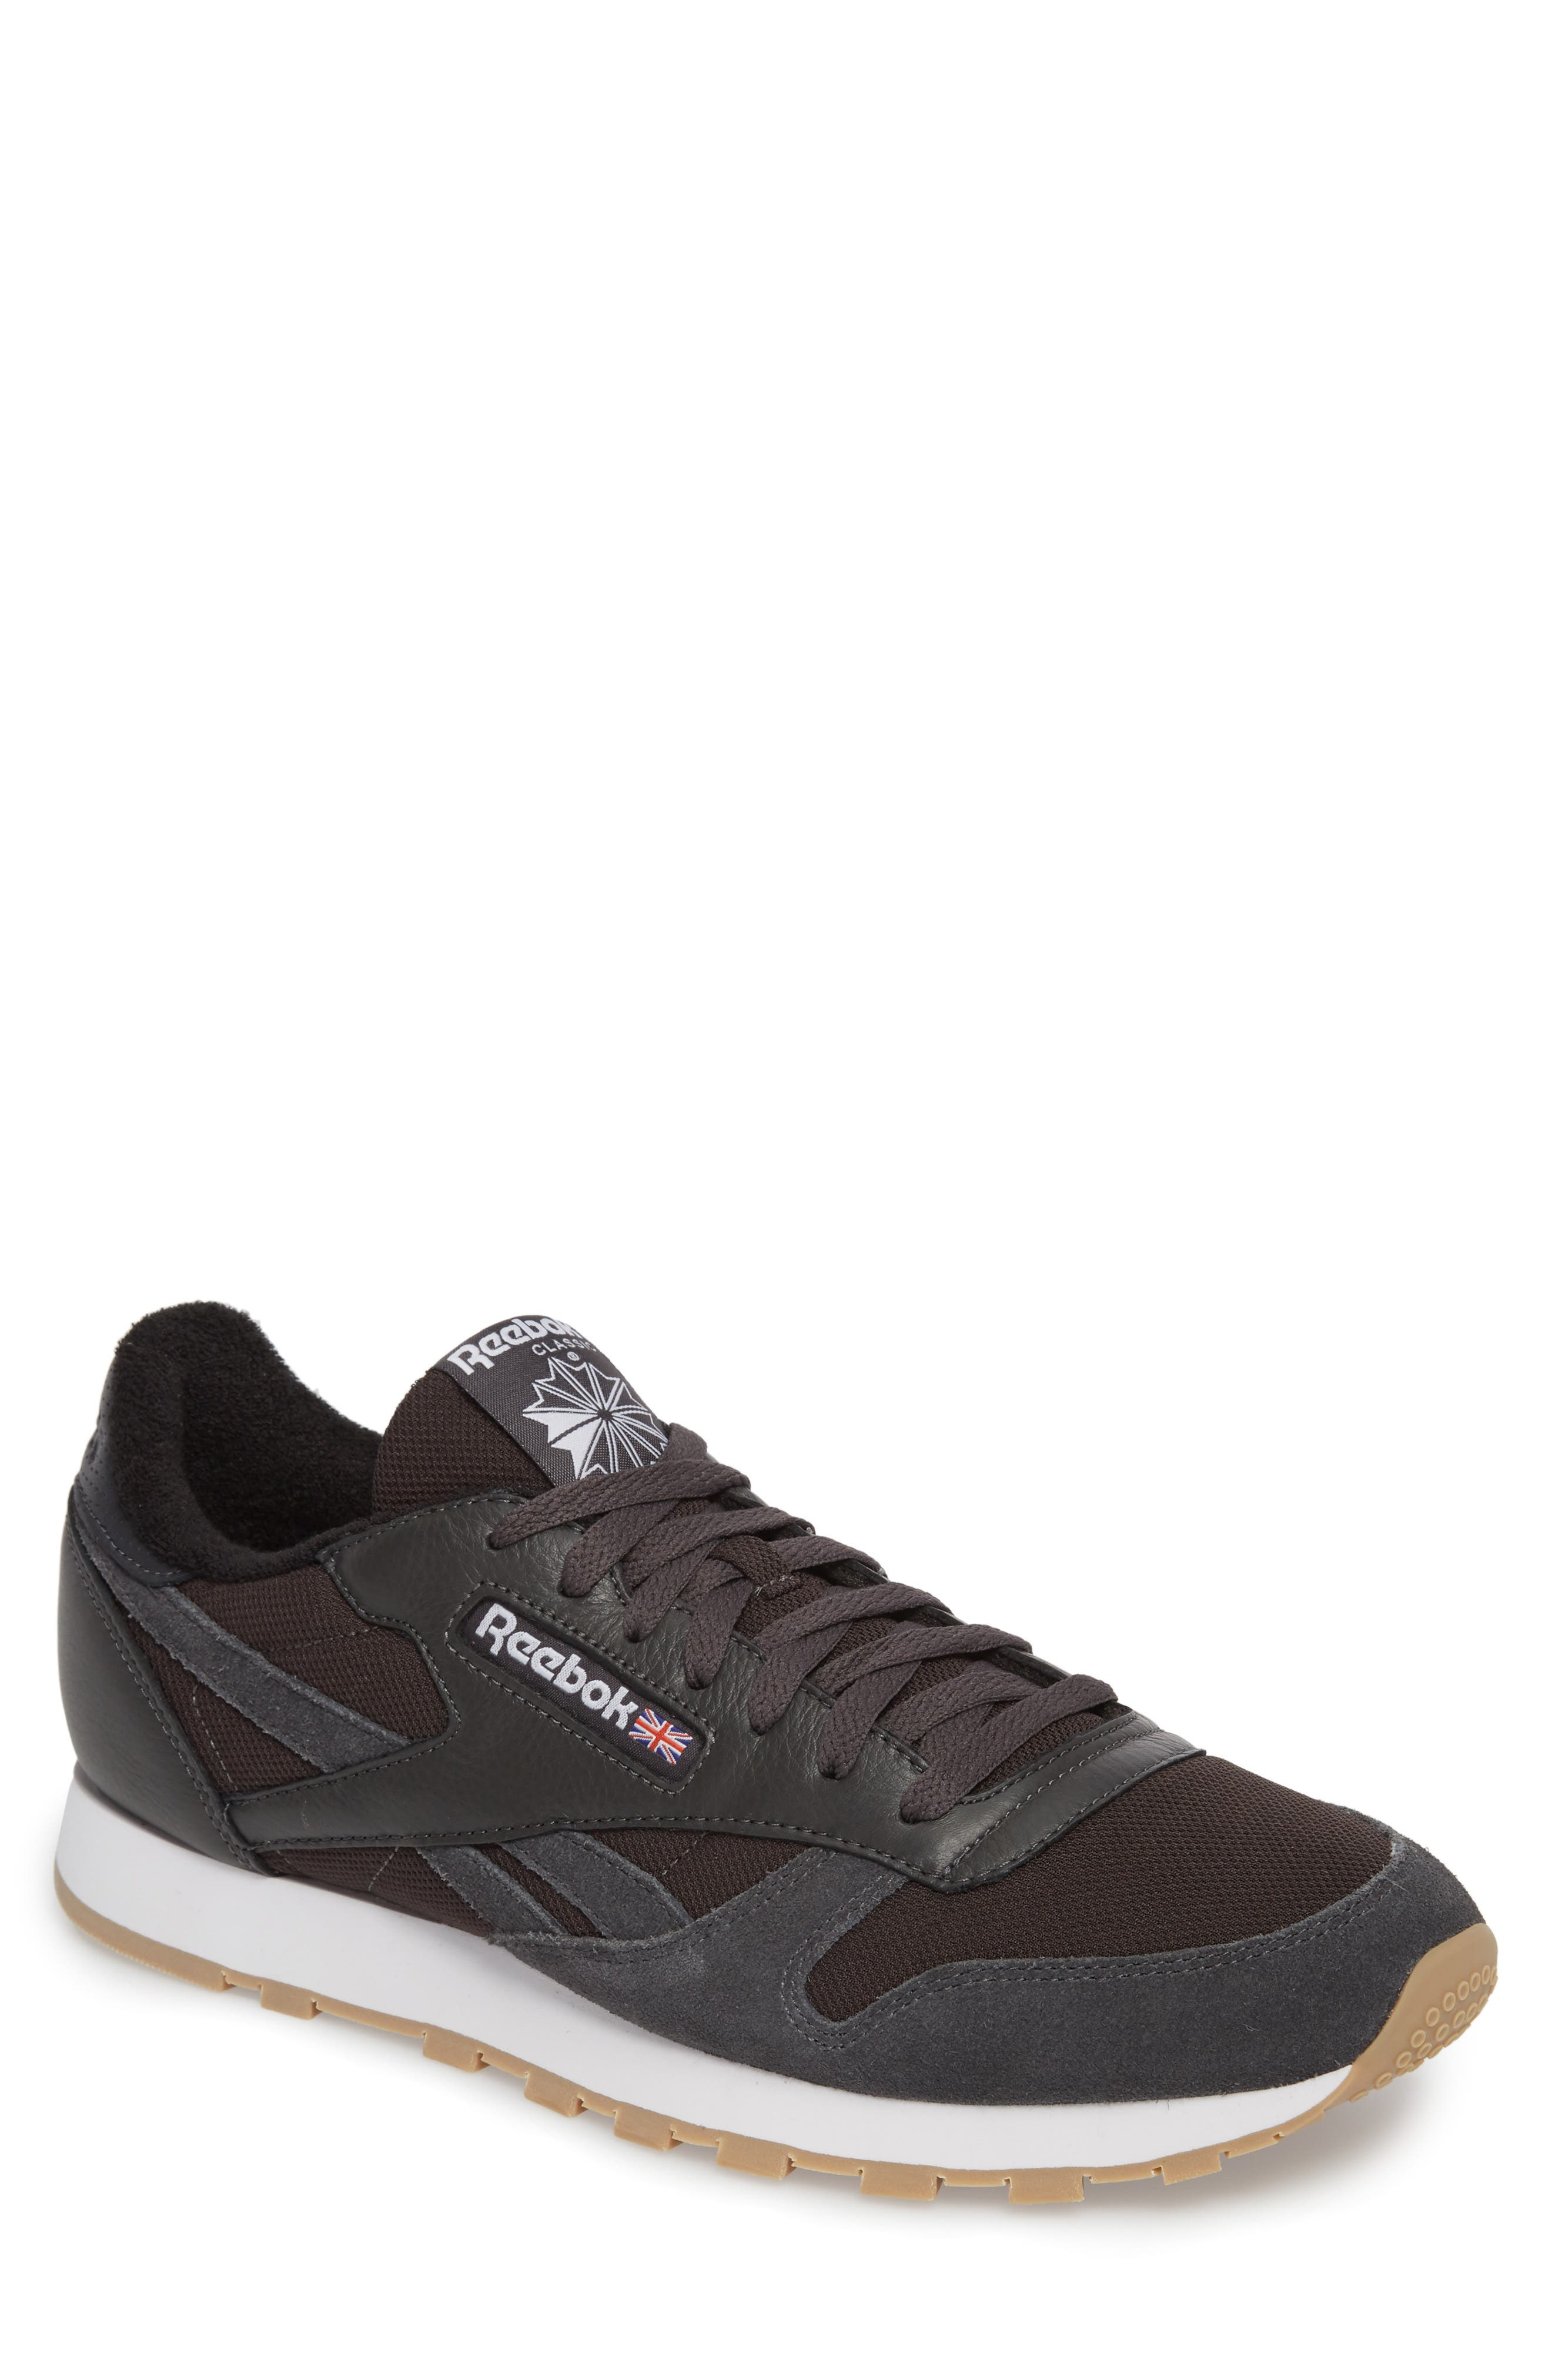 ESTL Classic Leather Sneaker,                         Main,                         color, Coal/ White/ Washed Blue